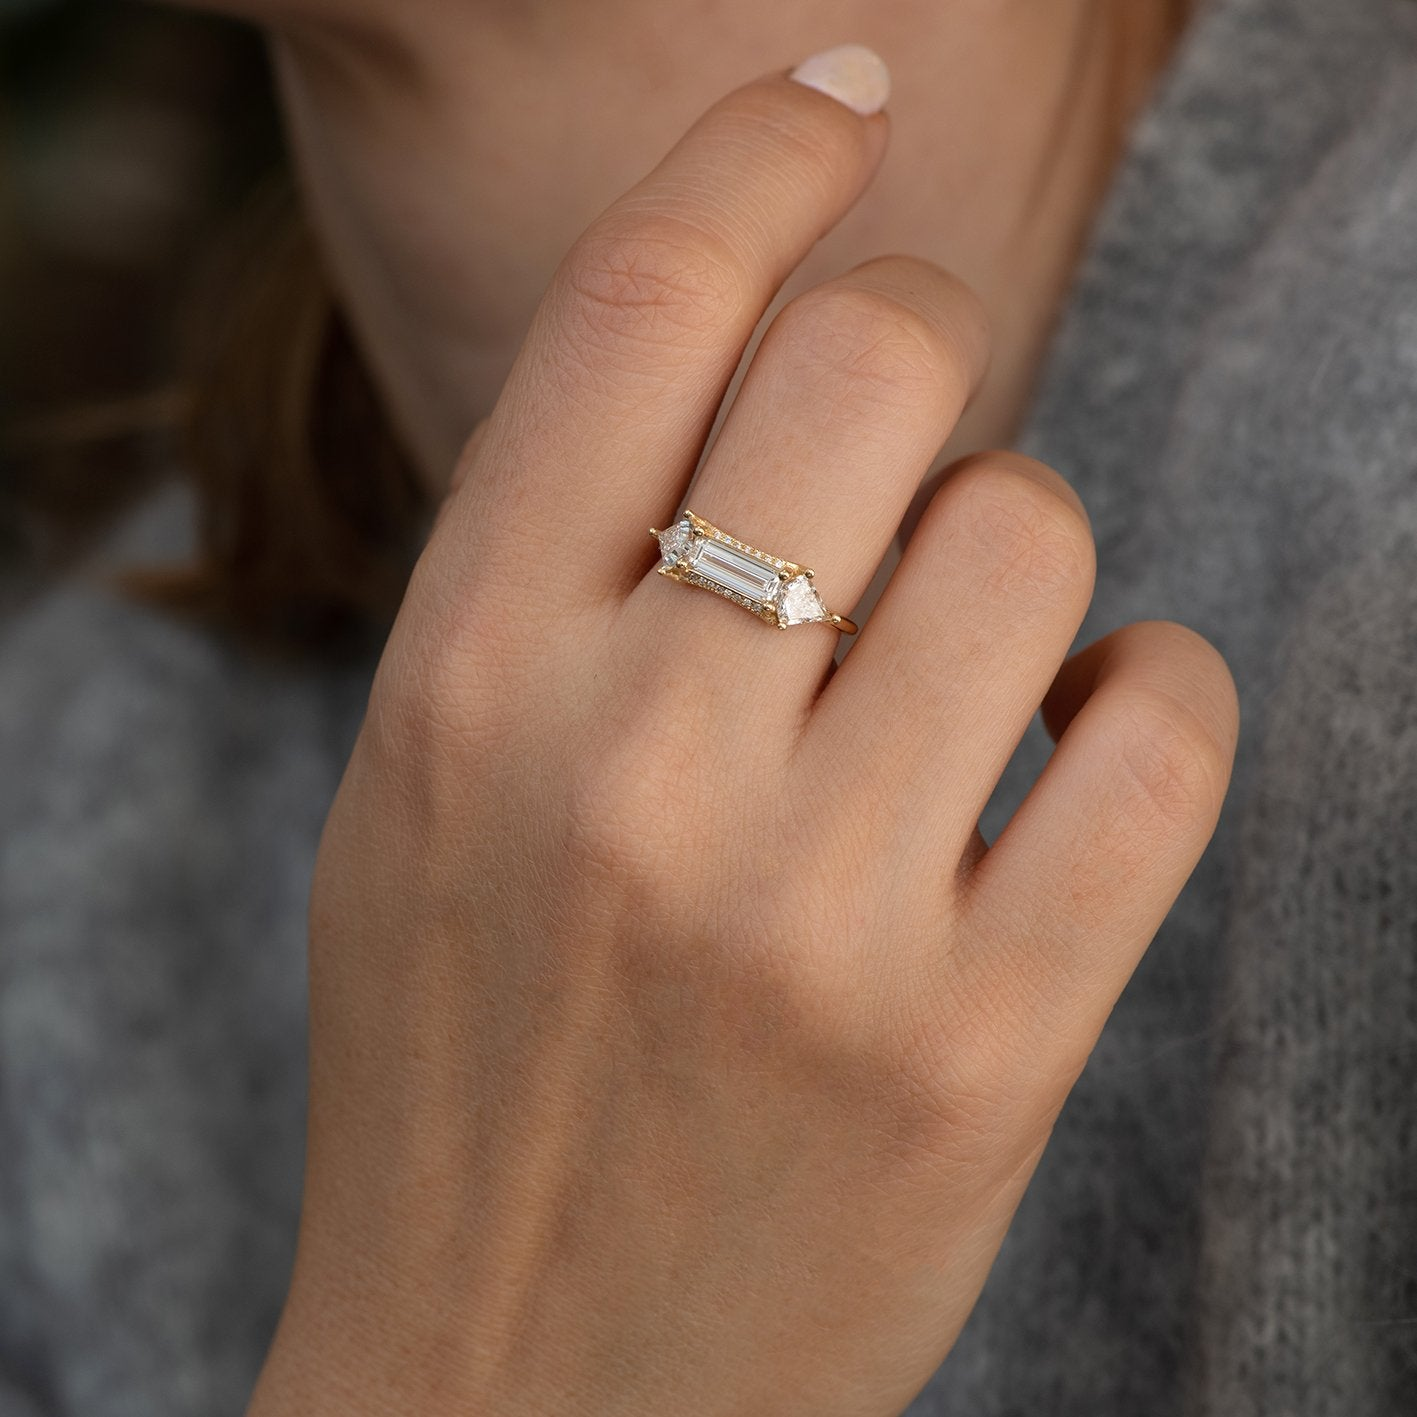 Baguette cut engagement  ring with kite diamonds3